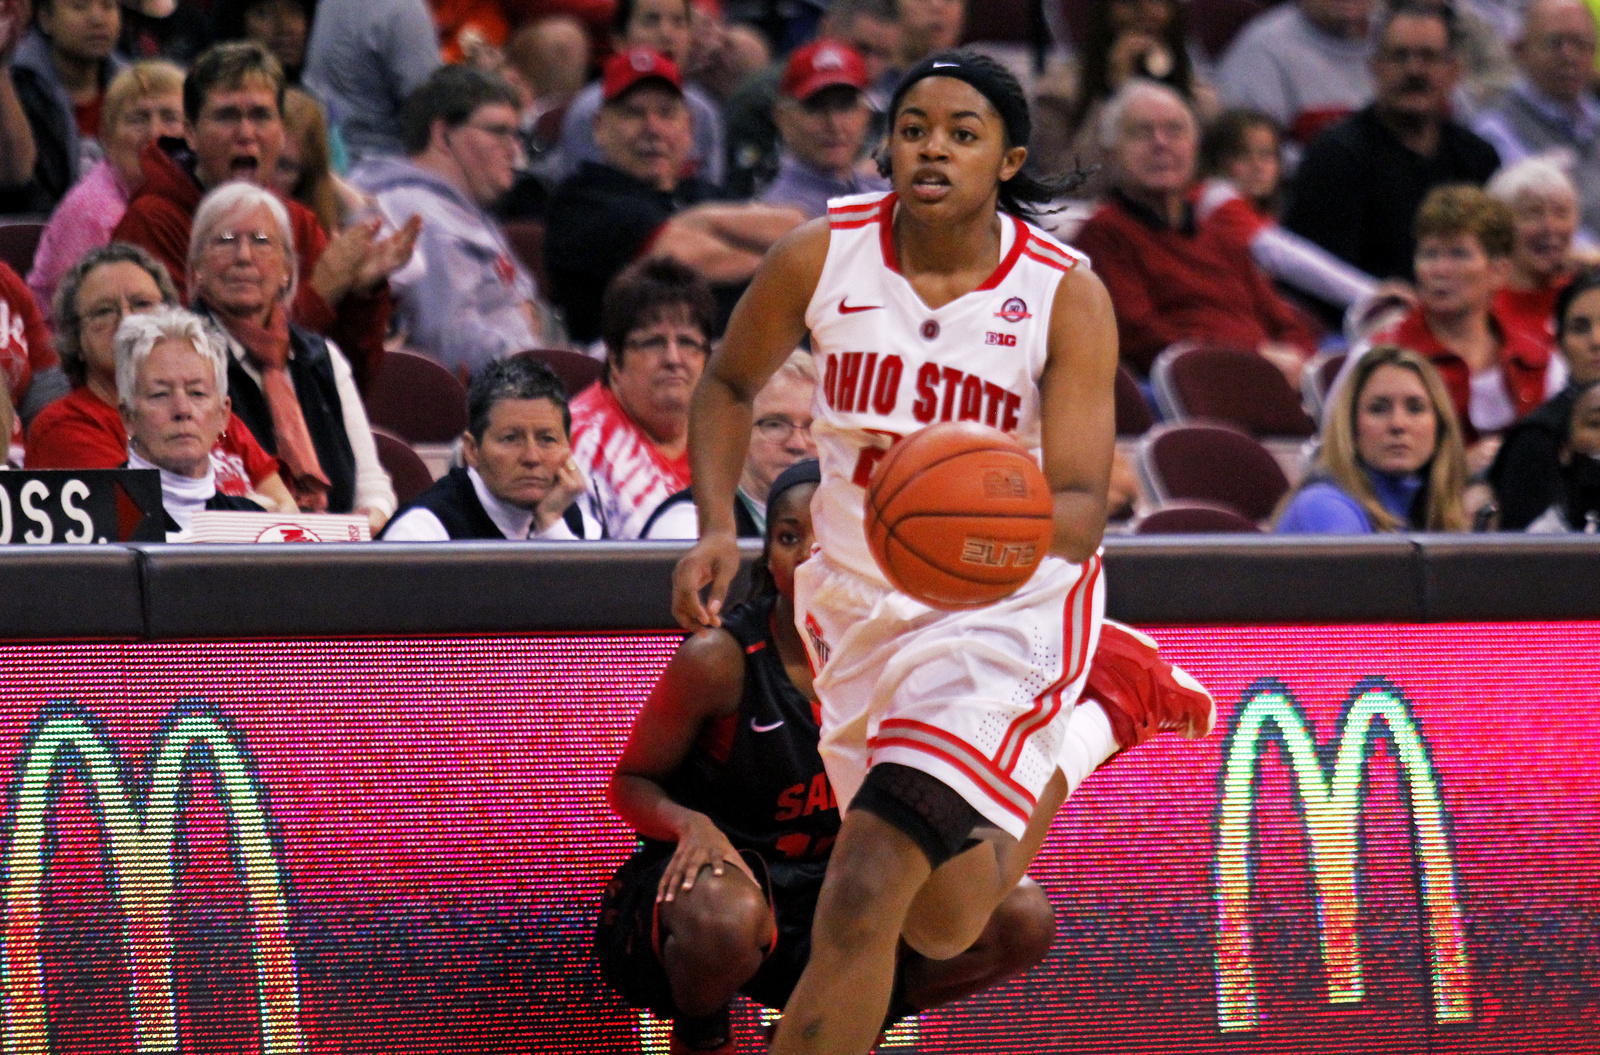 Columbus to host NCAA women's basketball Final Four in ...